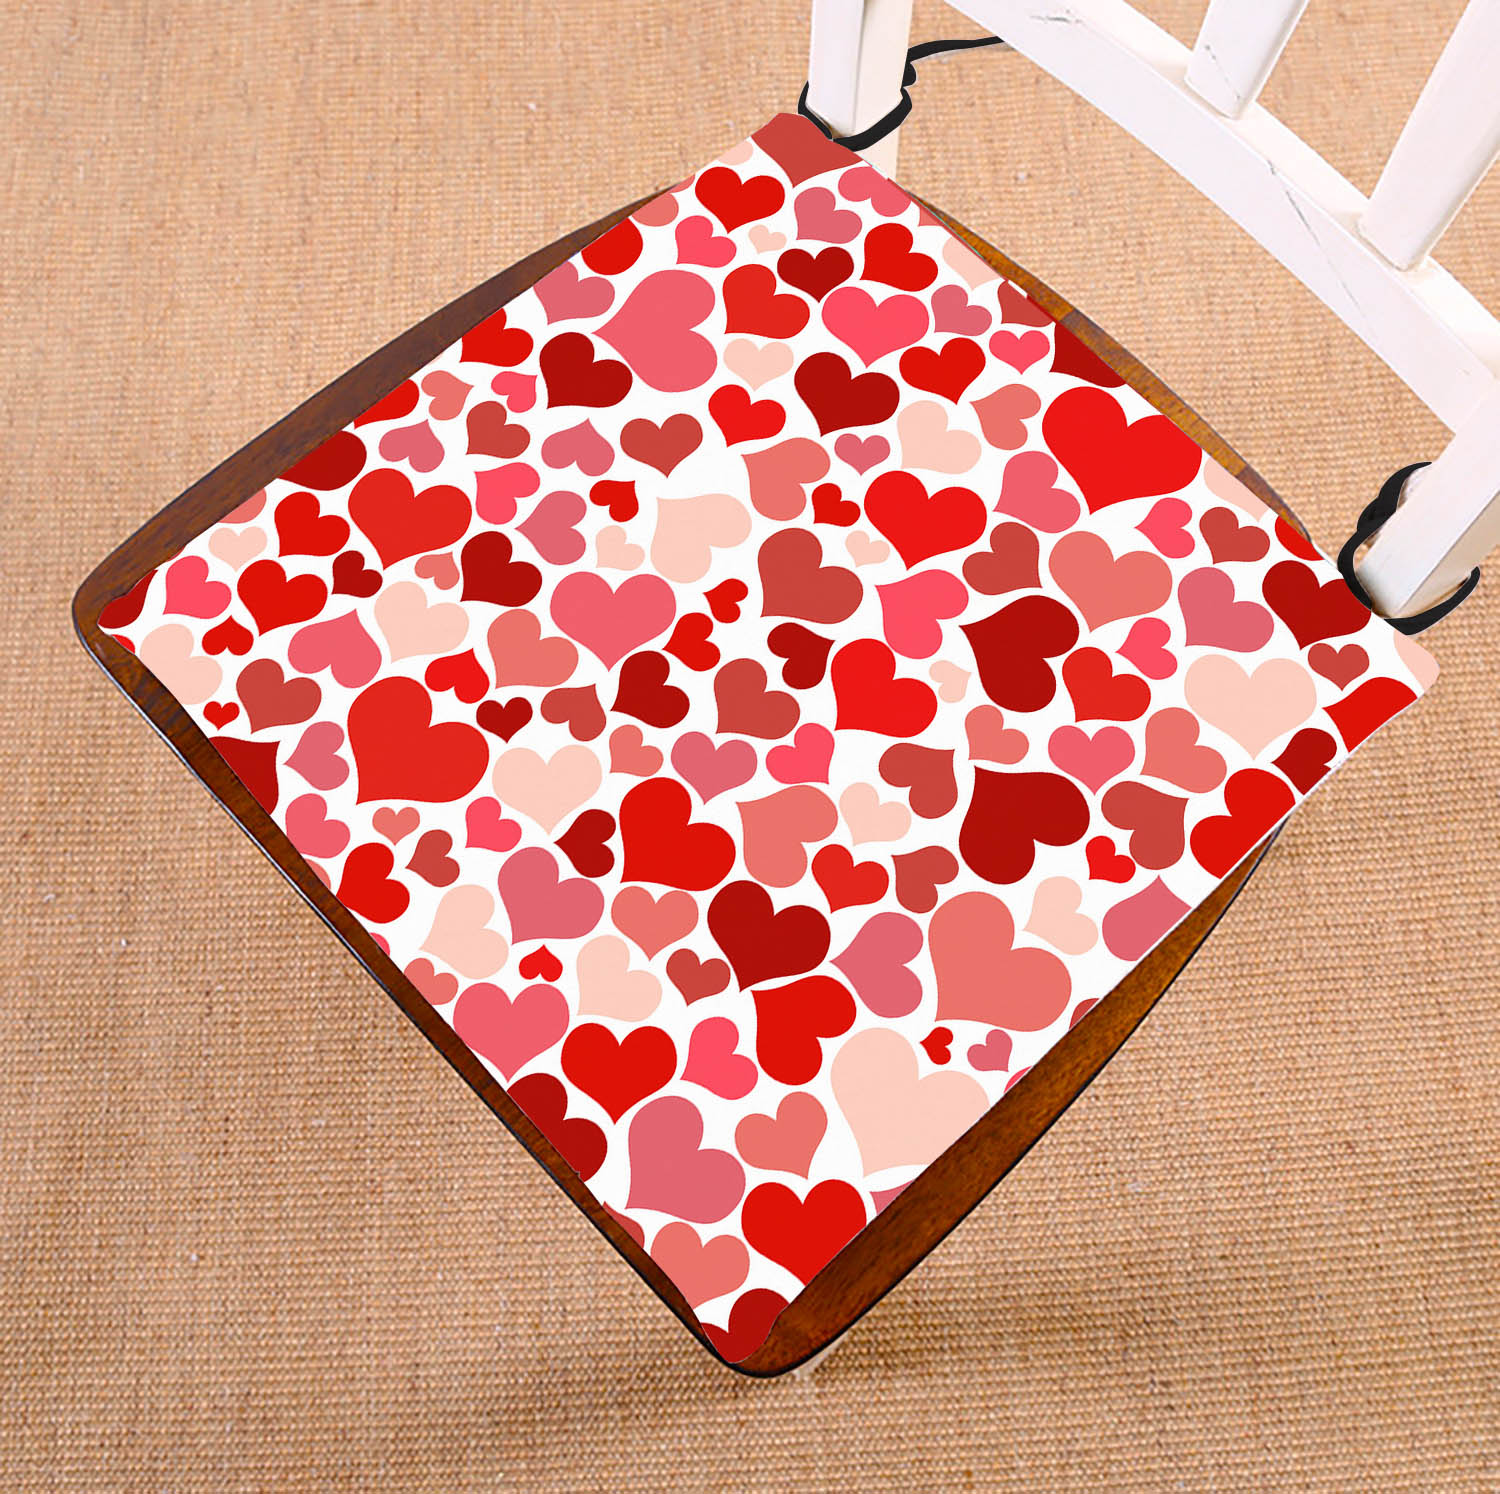 GCKG Valentine's Day Gift Pattern Chair Pad Seat Cushion Chair Cushion Floor Cushion with Breathable Memory Inner Cushion and Ties Two Sides Printing 16x16inch